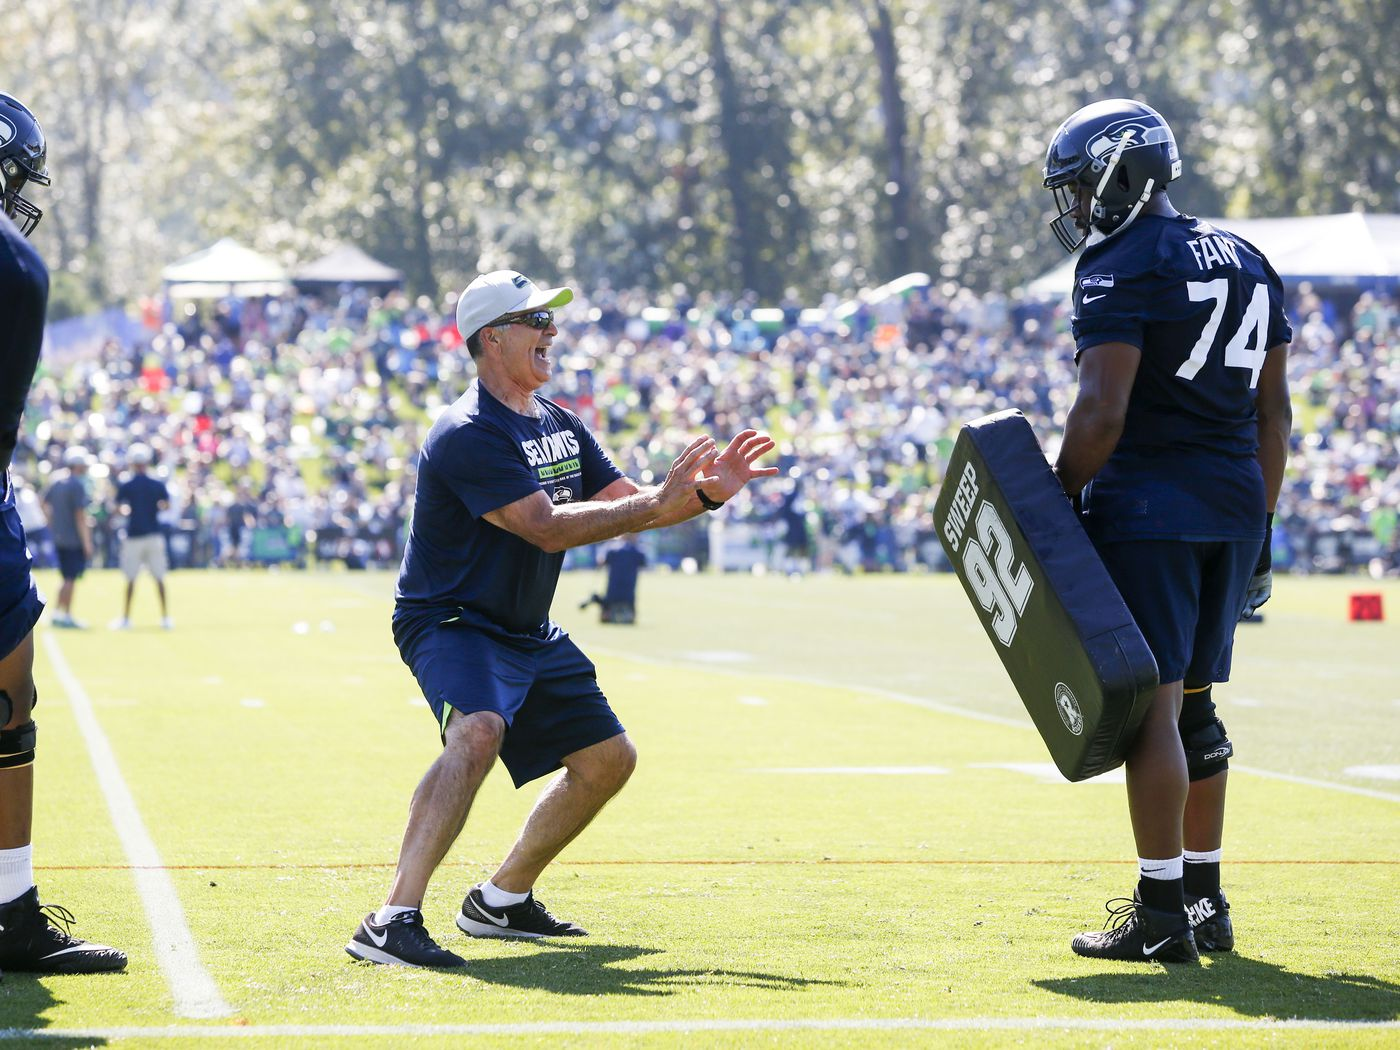 c9d619c979ba8 Seattle Seahawks Training Camp 2018  News and notes from day 10 - Field  Gulls